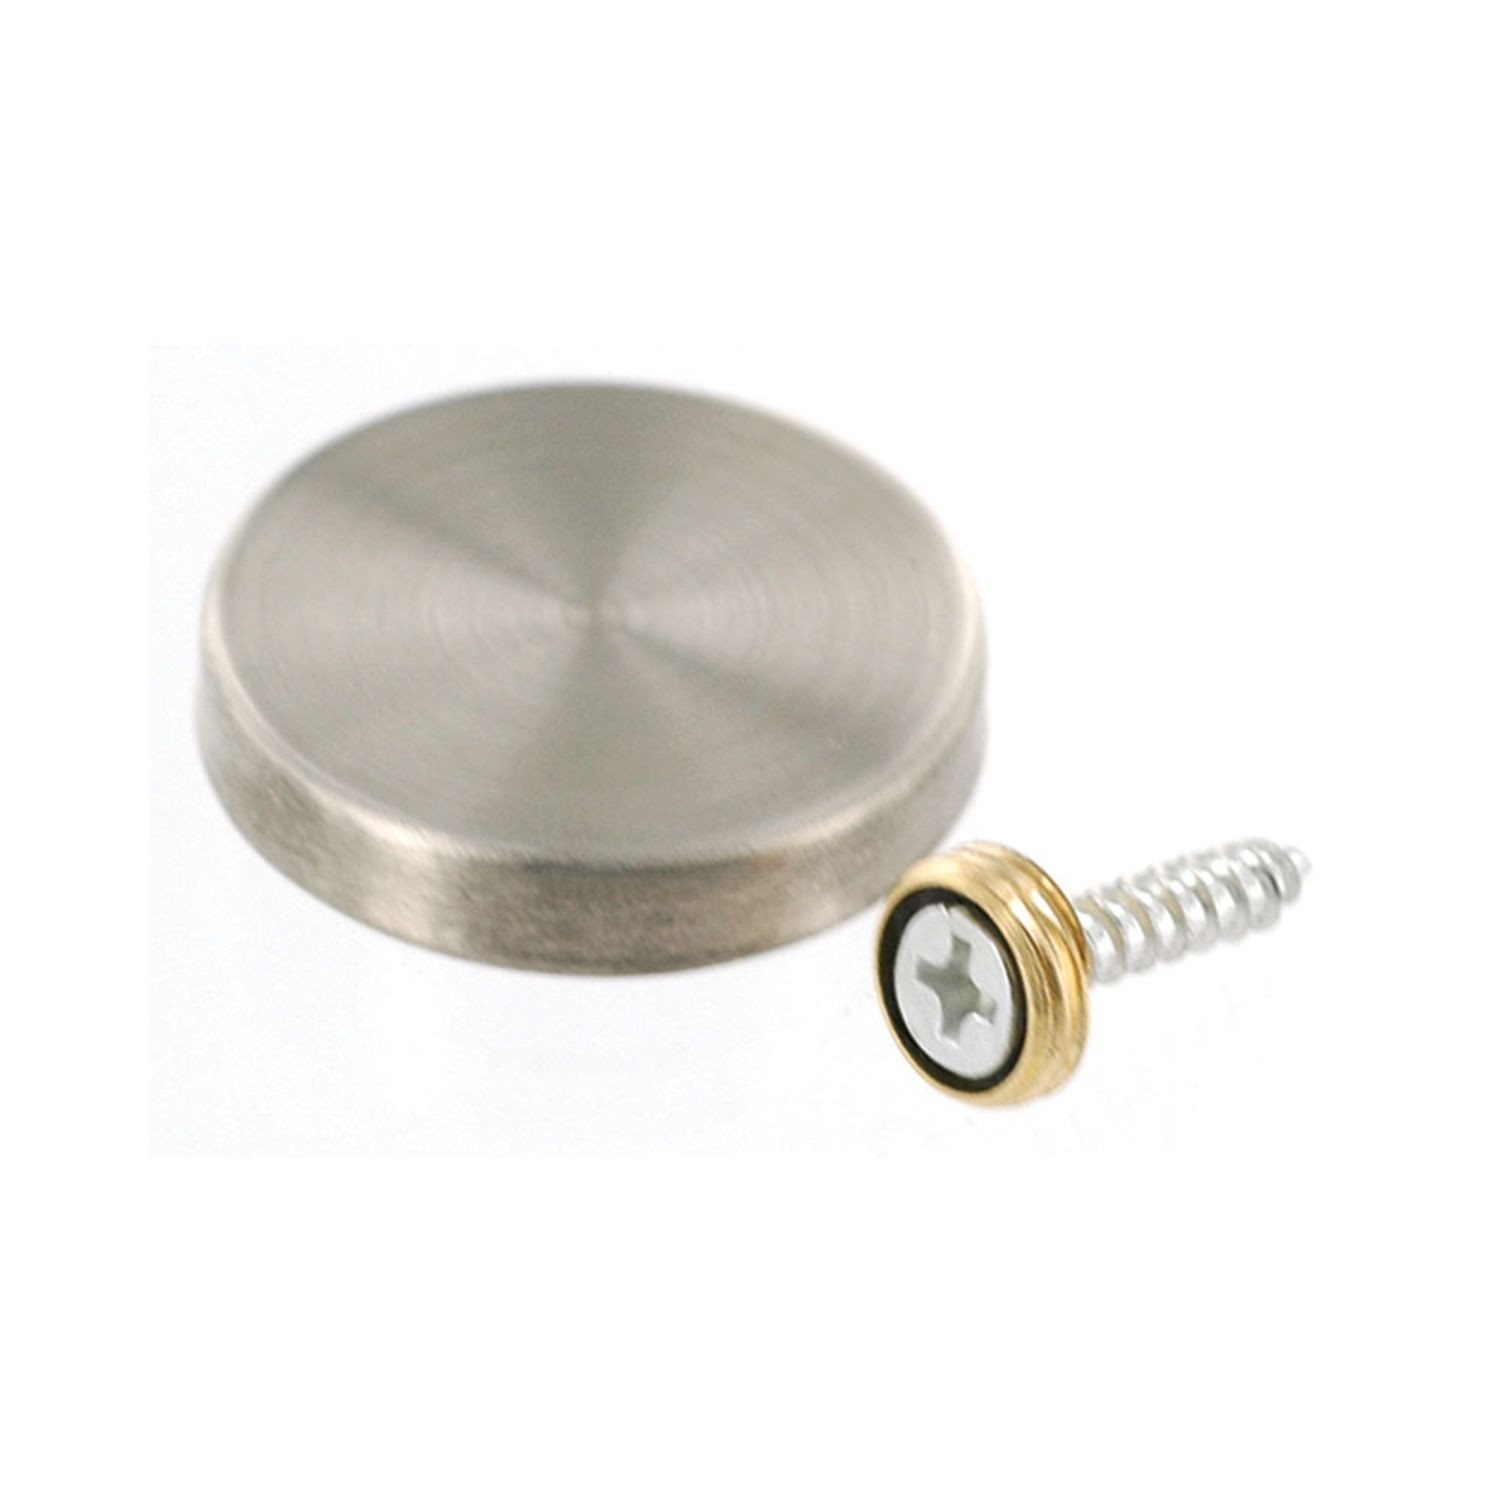 "1"" Diameter x 3/16"" High Brushed Stainless Steel Finish Eco Lite Wall Mount Series Cap It Off Standoff"